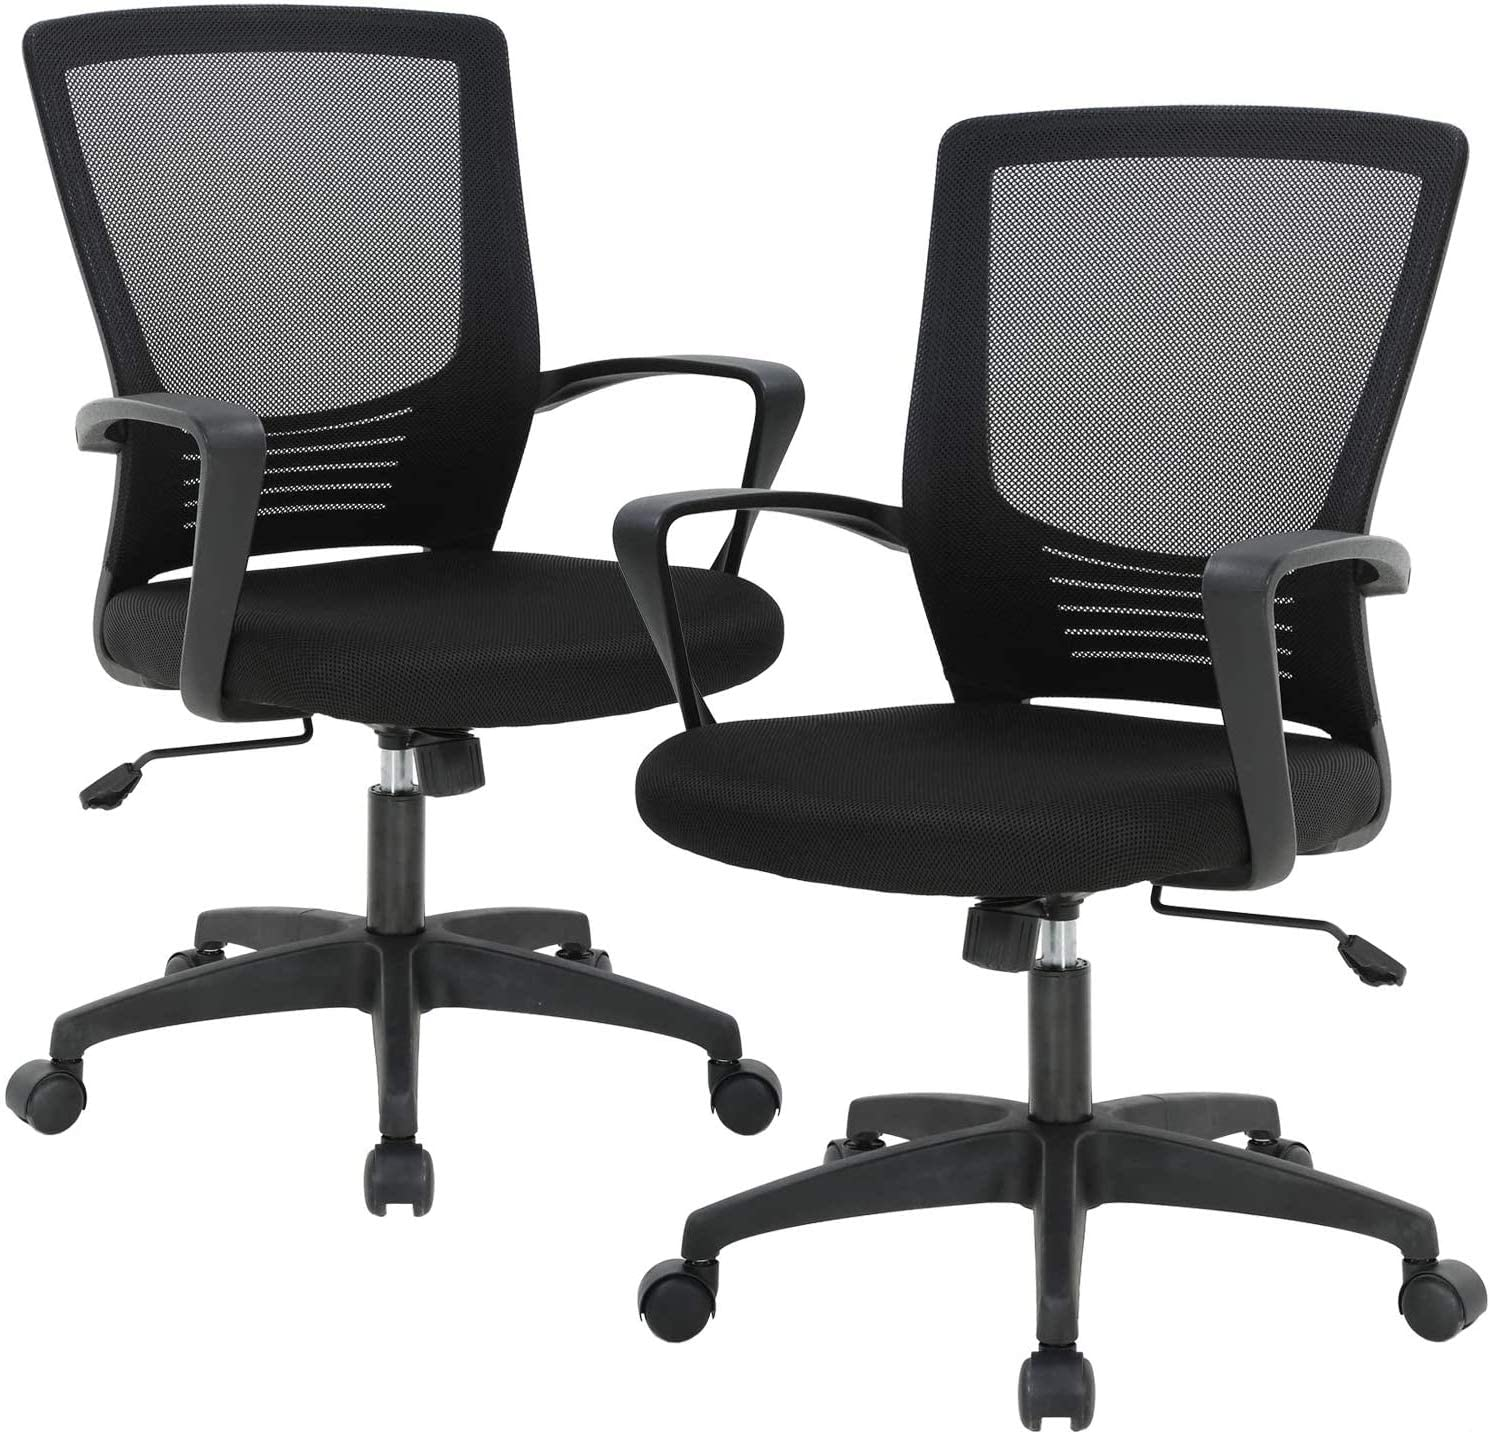 Home Ergonomic Desk Office Chair Mesh Computer Chair, Lumbar Support Modern Executive Adjustable Stool Rolling Swivel Chair for Back Pain, Chic Modern Best Home Office Chair, Black Metal Base - 2 Pack